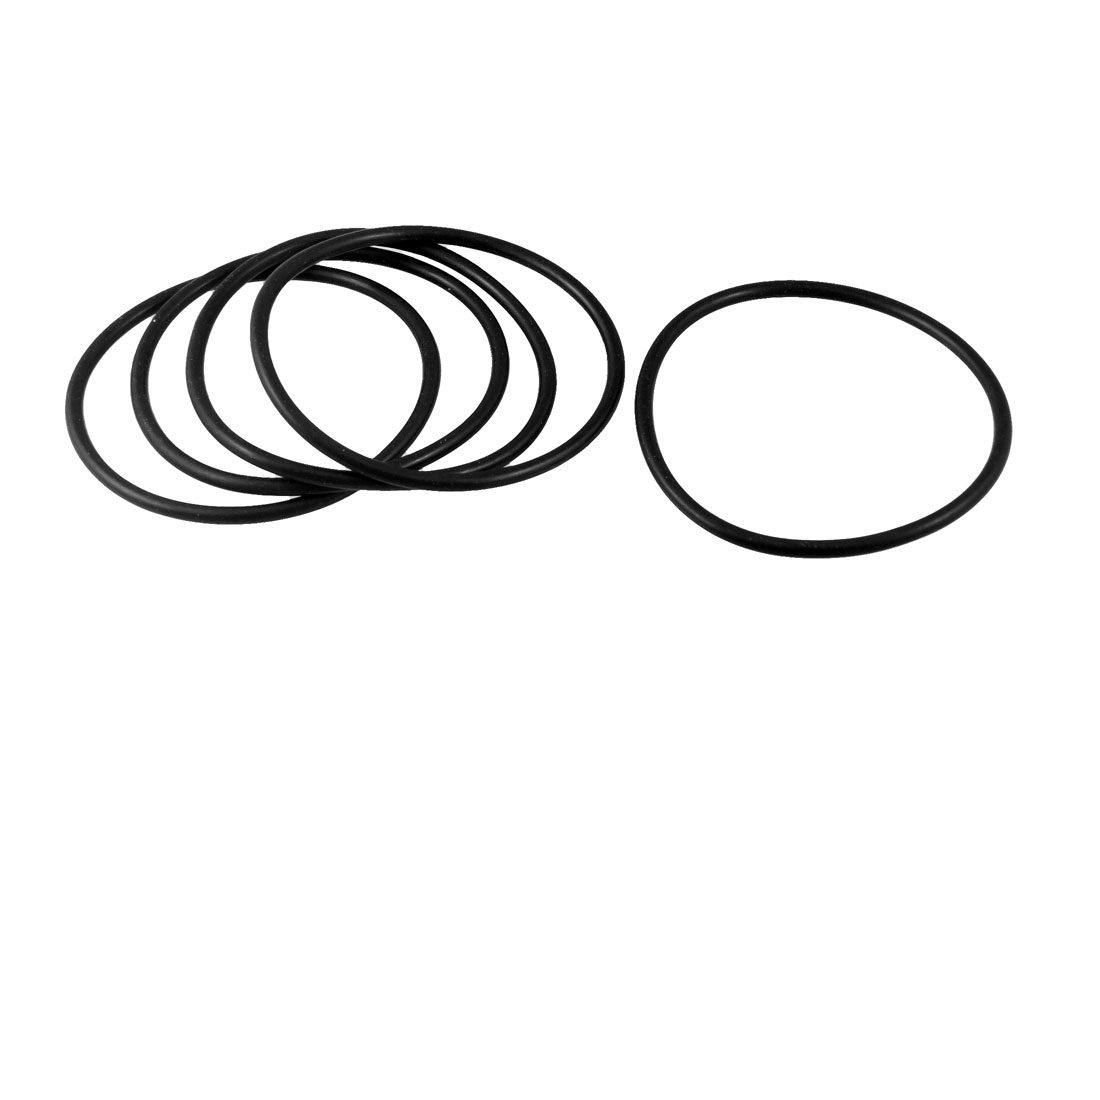 56mm x 3.5mm x 49mm Rubber Sealing Oil Filter O Rings Gaskets 5 Pcs